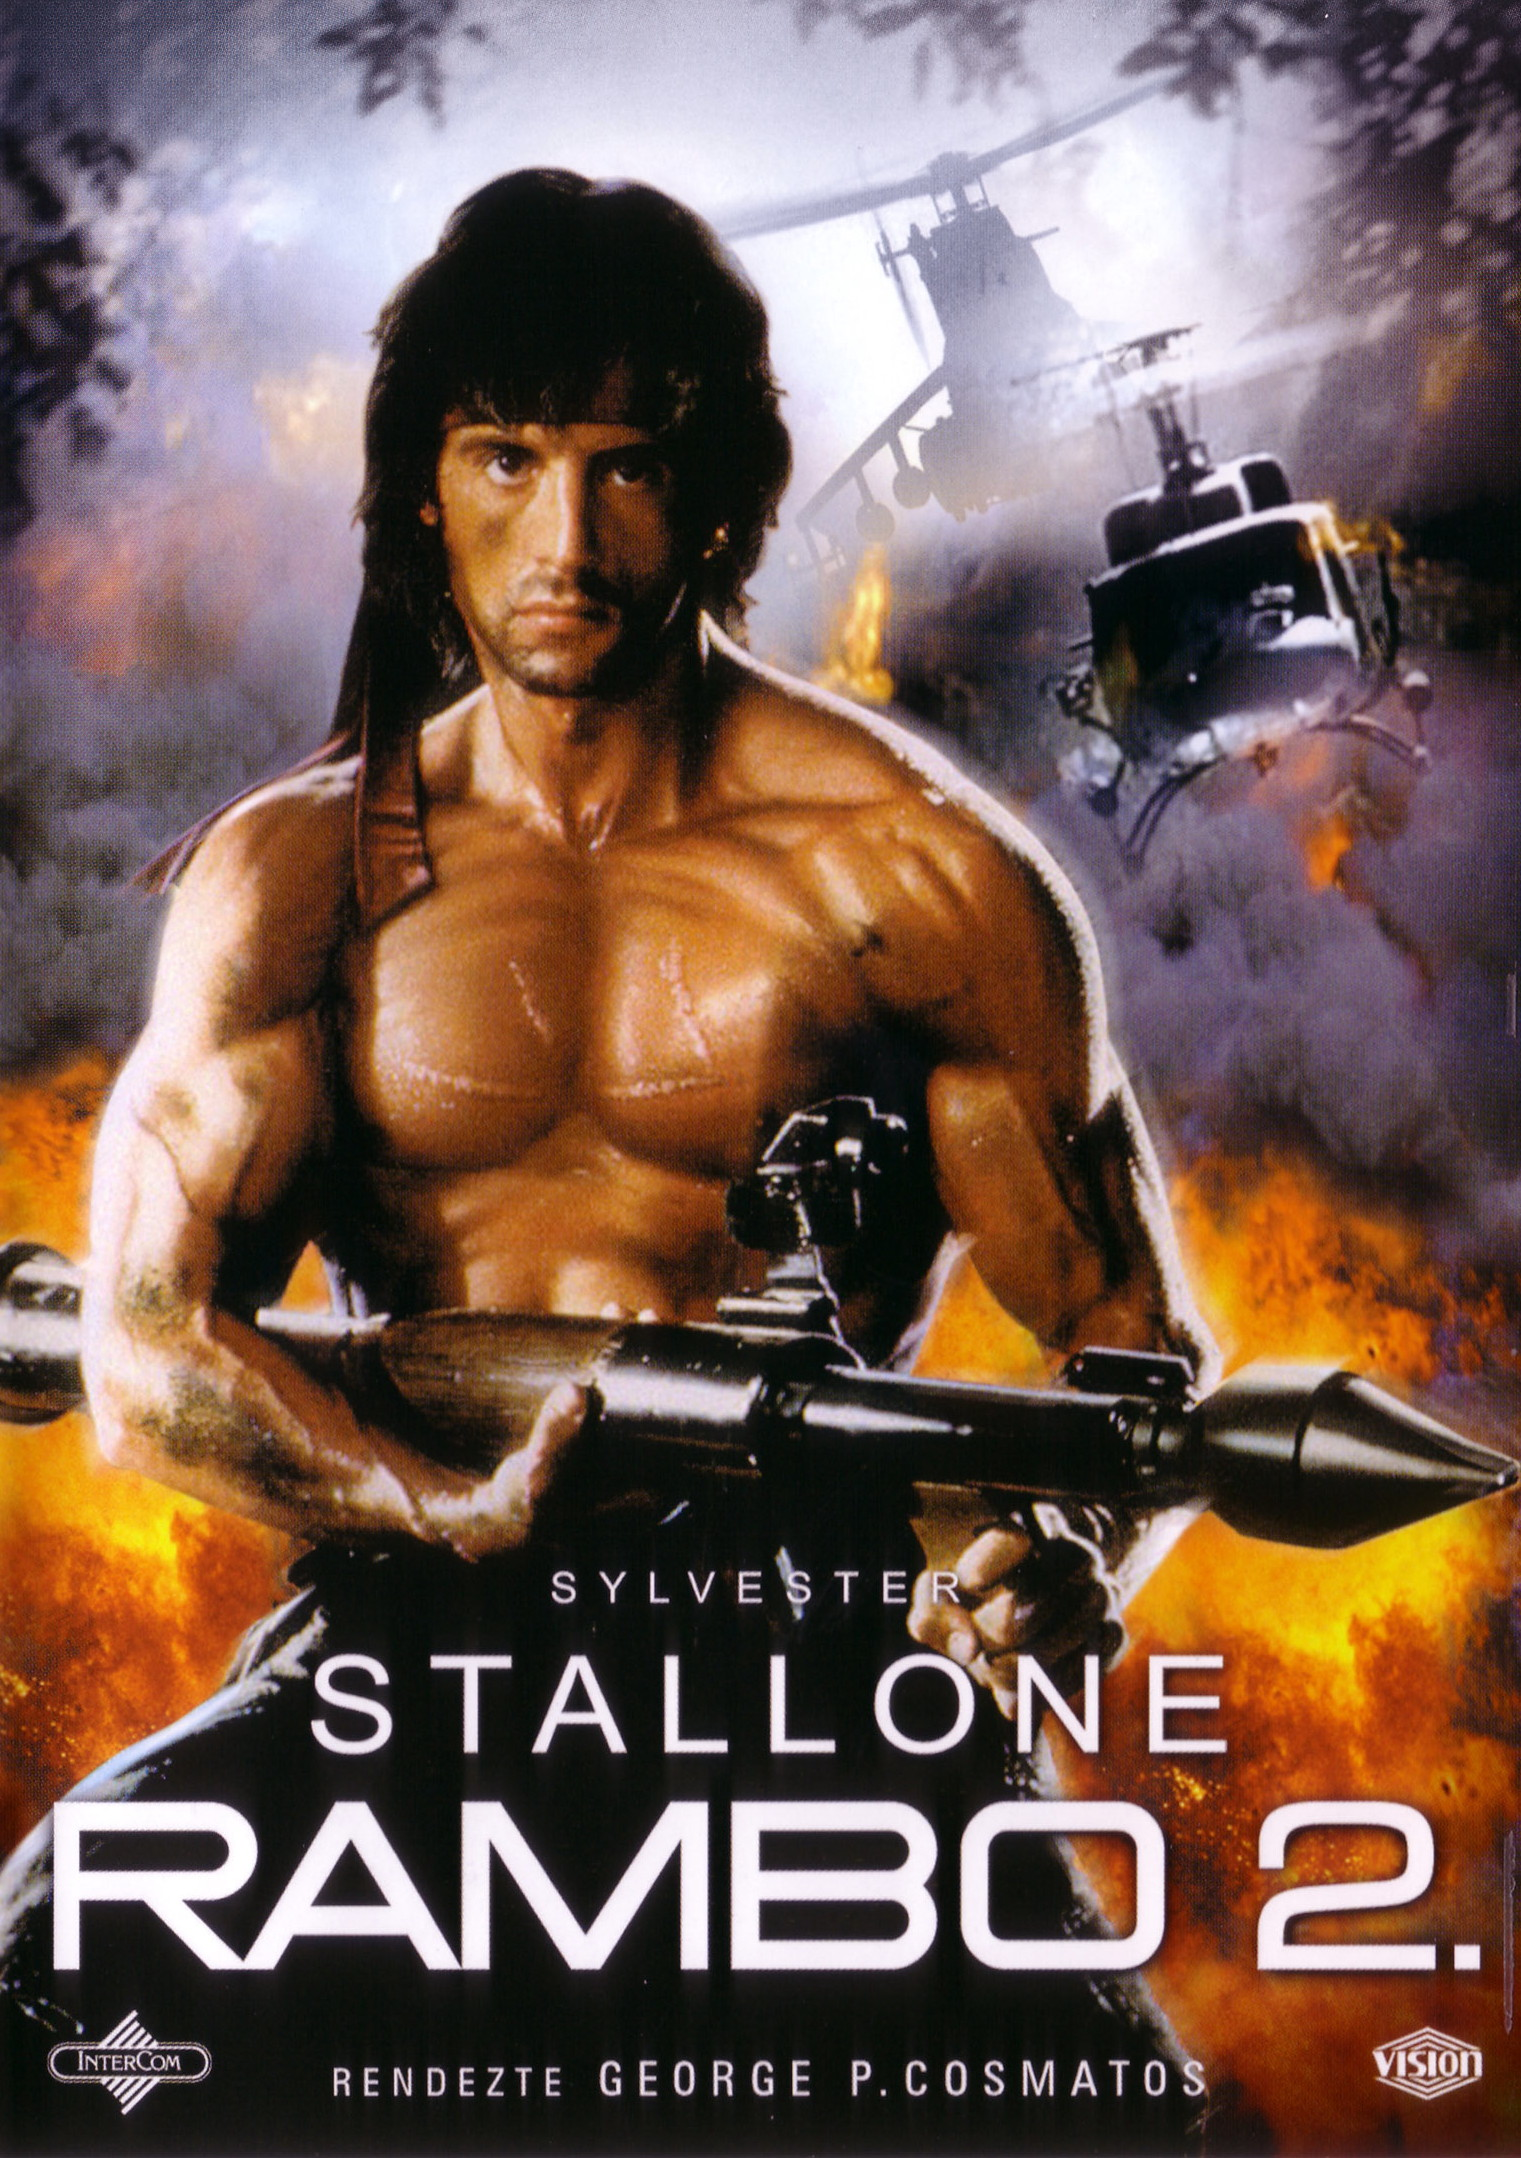 http://m.cdn.blog.hu/fi/filmdroid/image/doggfather/rambo%202.jpg